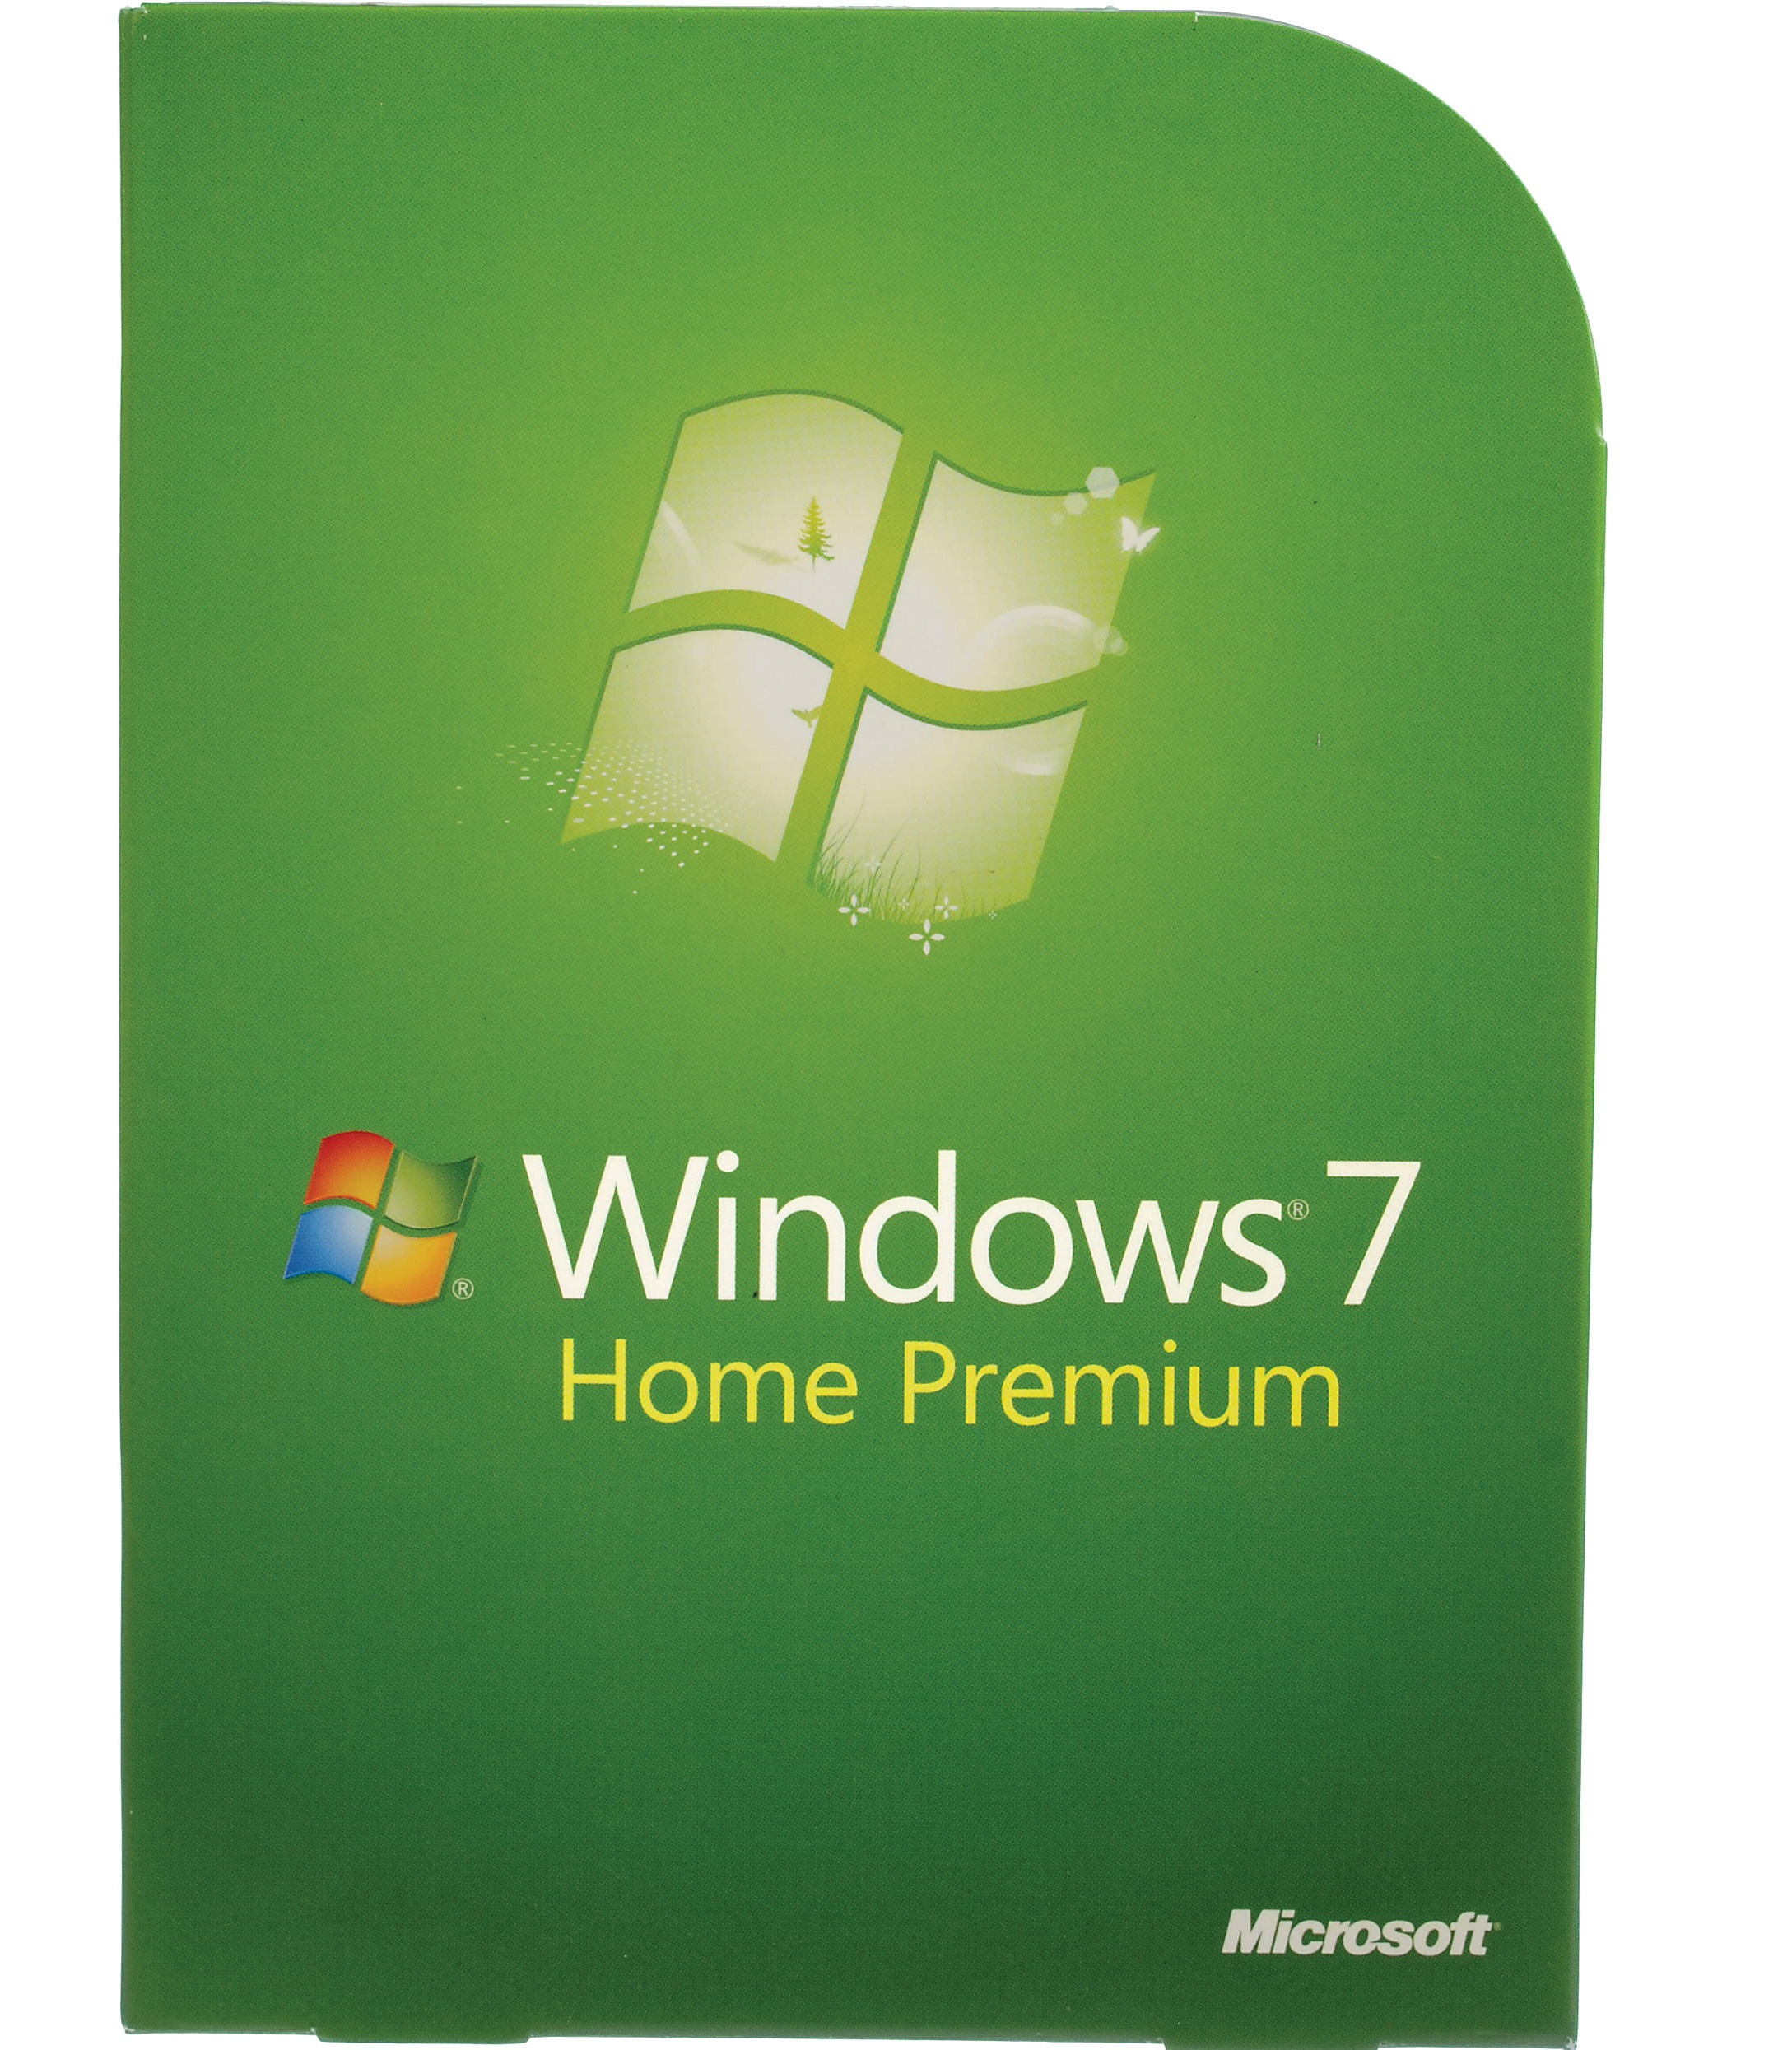 Windows 7 Home Premium Genuine ISO